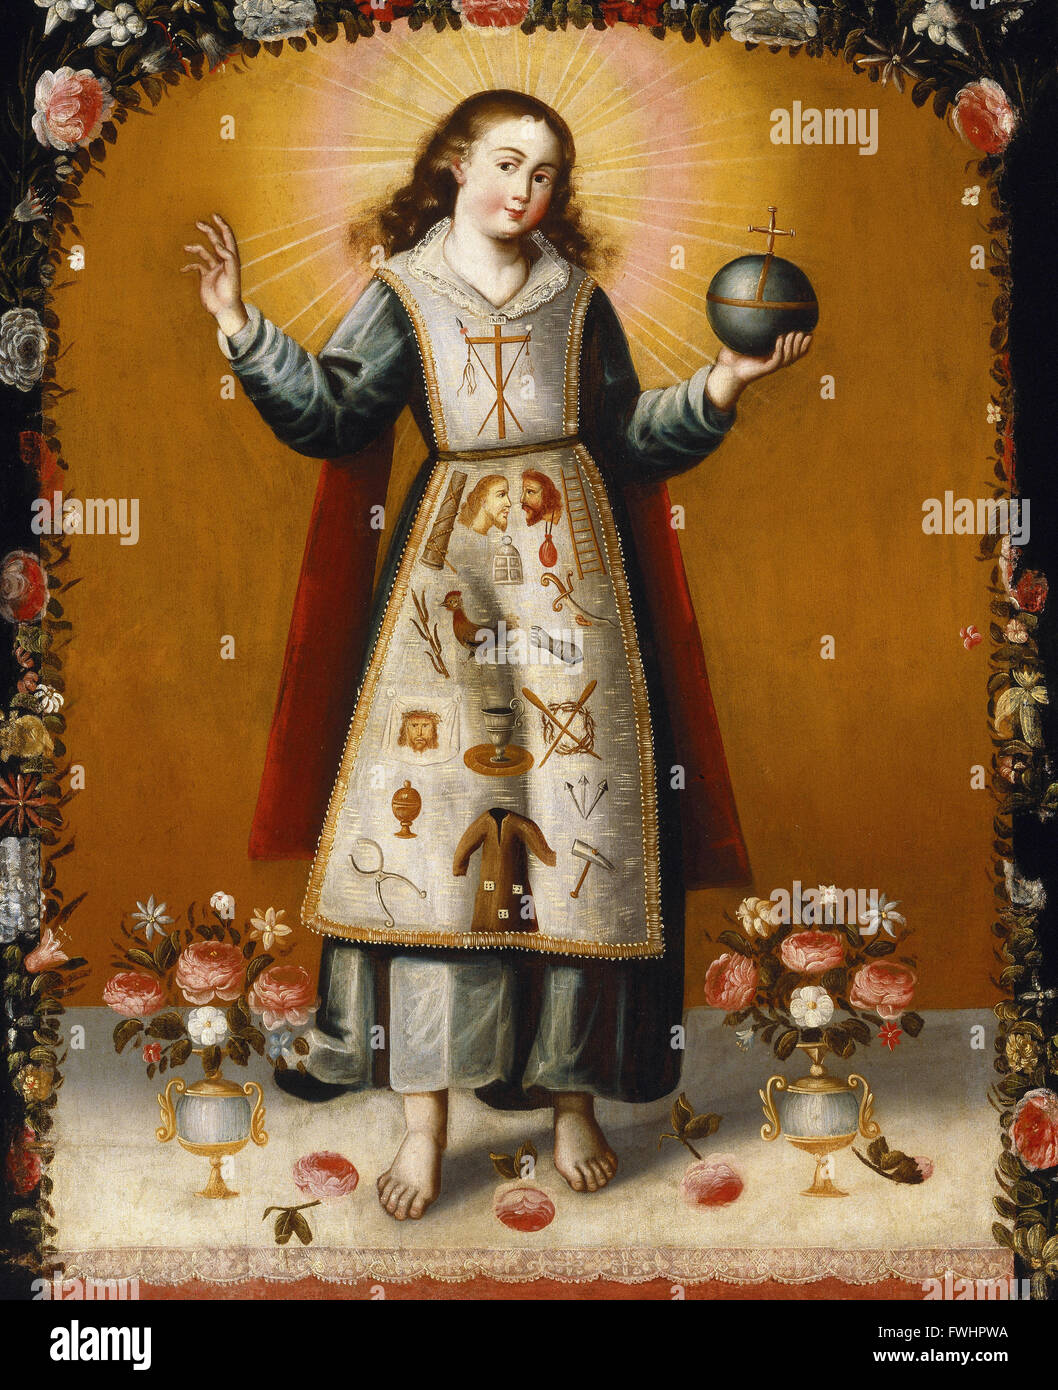 Christ Child with Passion Symbols - Brooklyn Museum - Stock Image